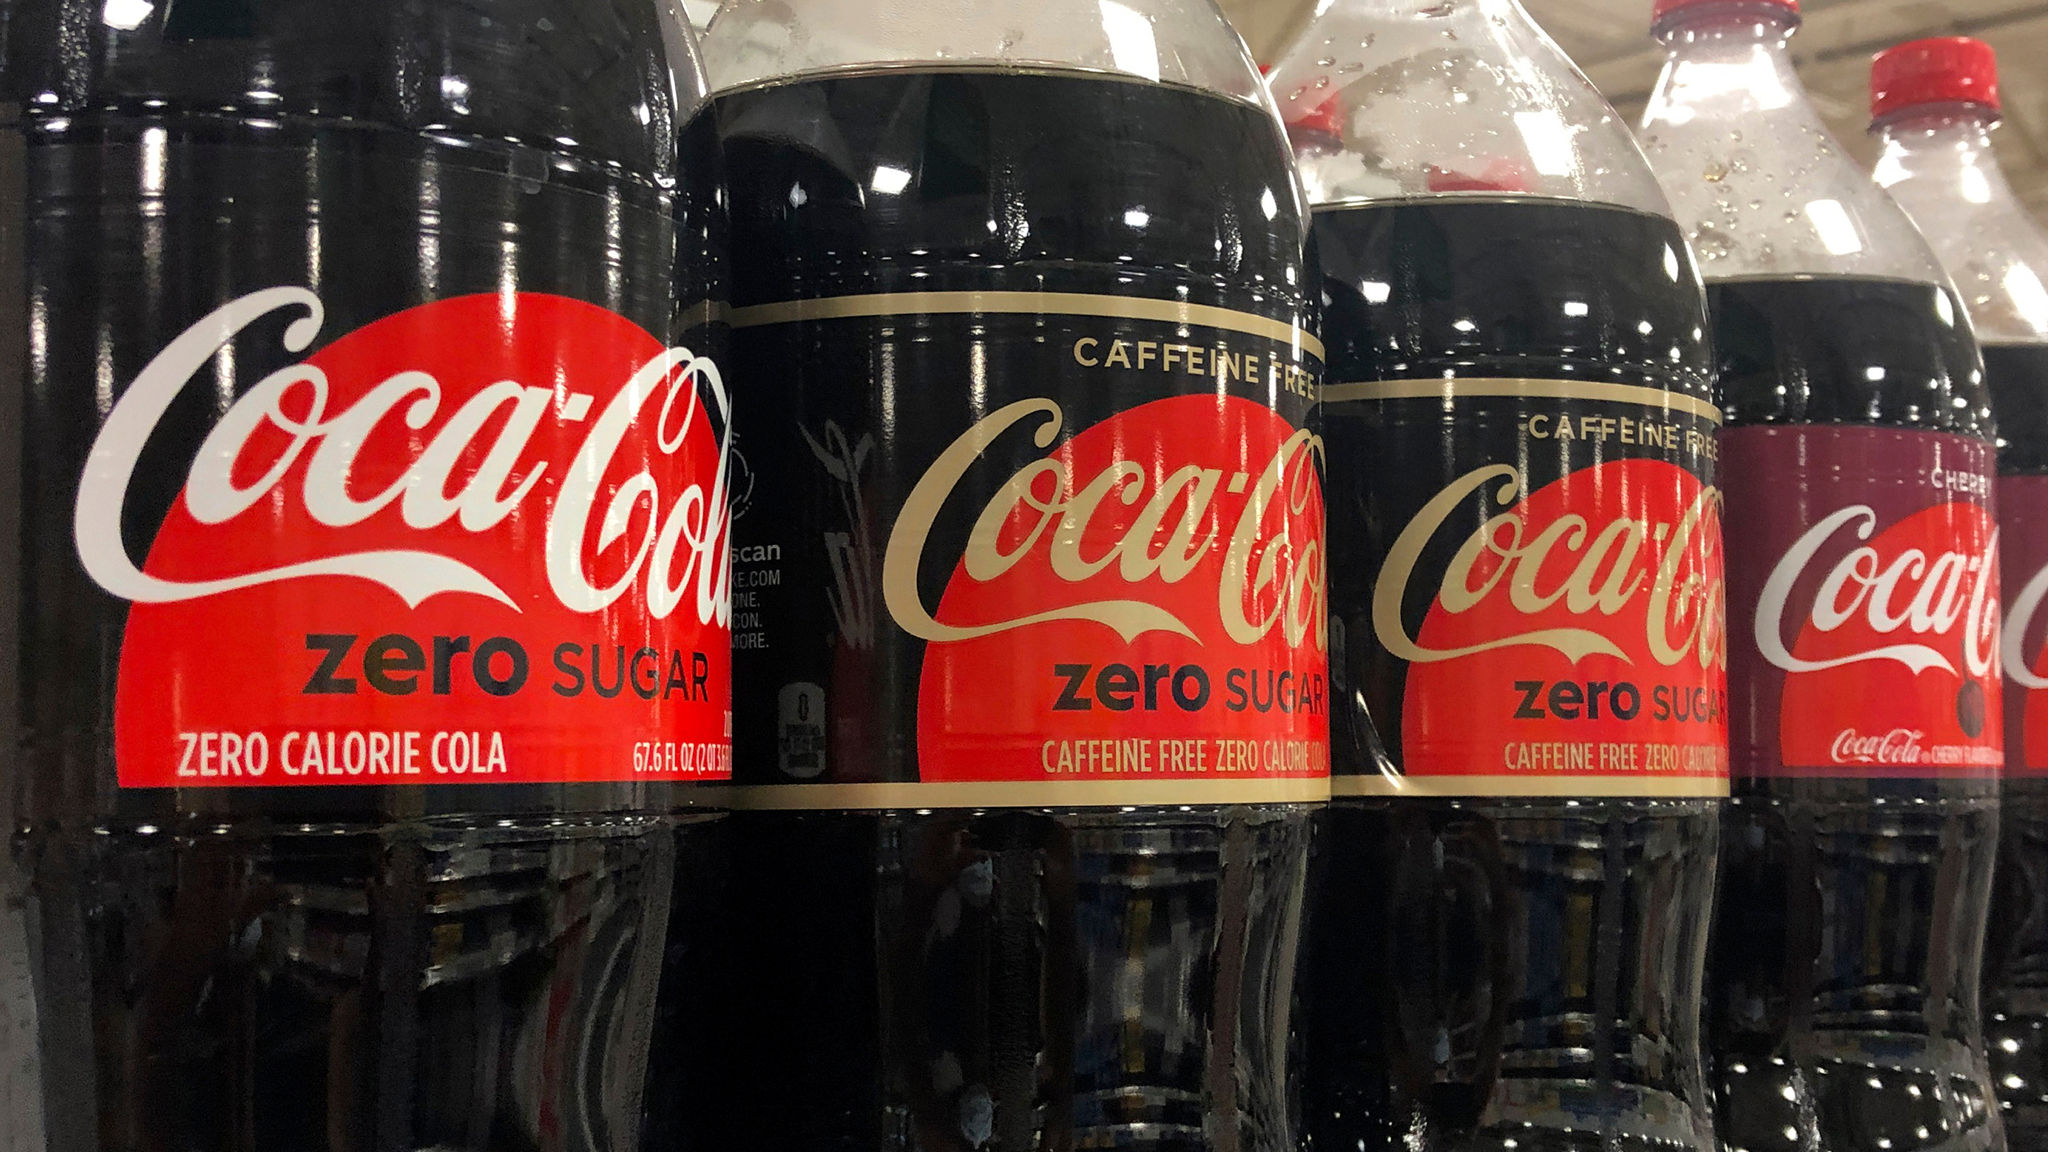 Coca Cola Christmas Bottle 2021 Coronavirus Coca Cola To Axe 2 200 Roles As Covid 19 Restrictions Bite As It Happened Financial Times